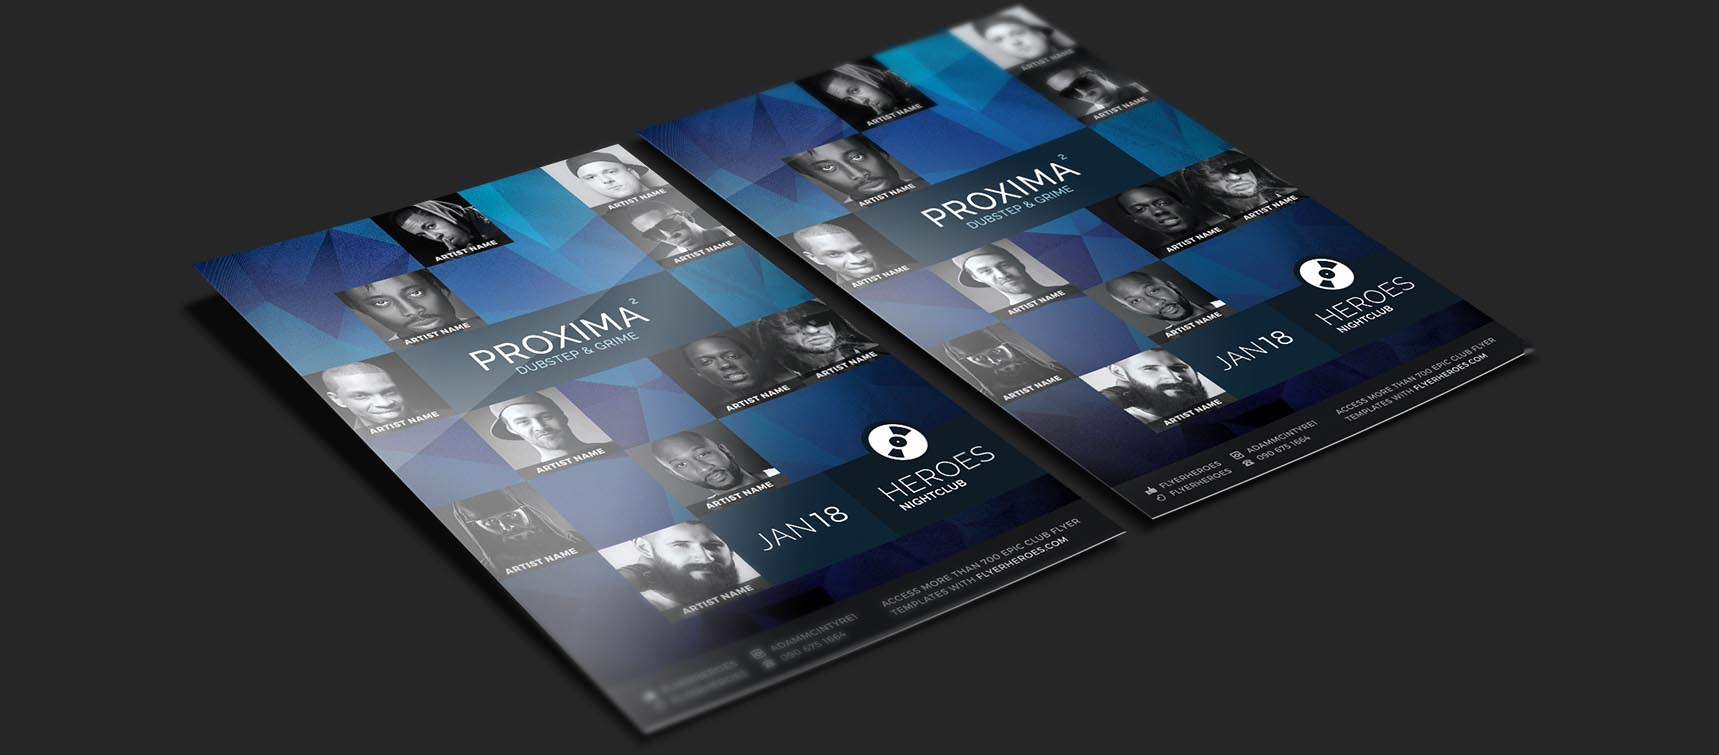 Free PSD Flyer Mock Up Templates Download By Carlos Viloria